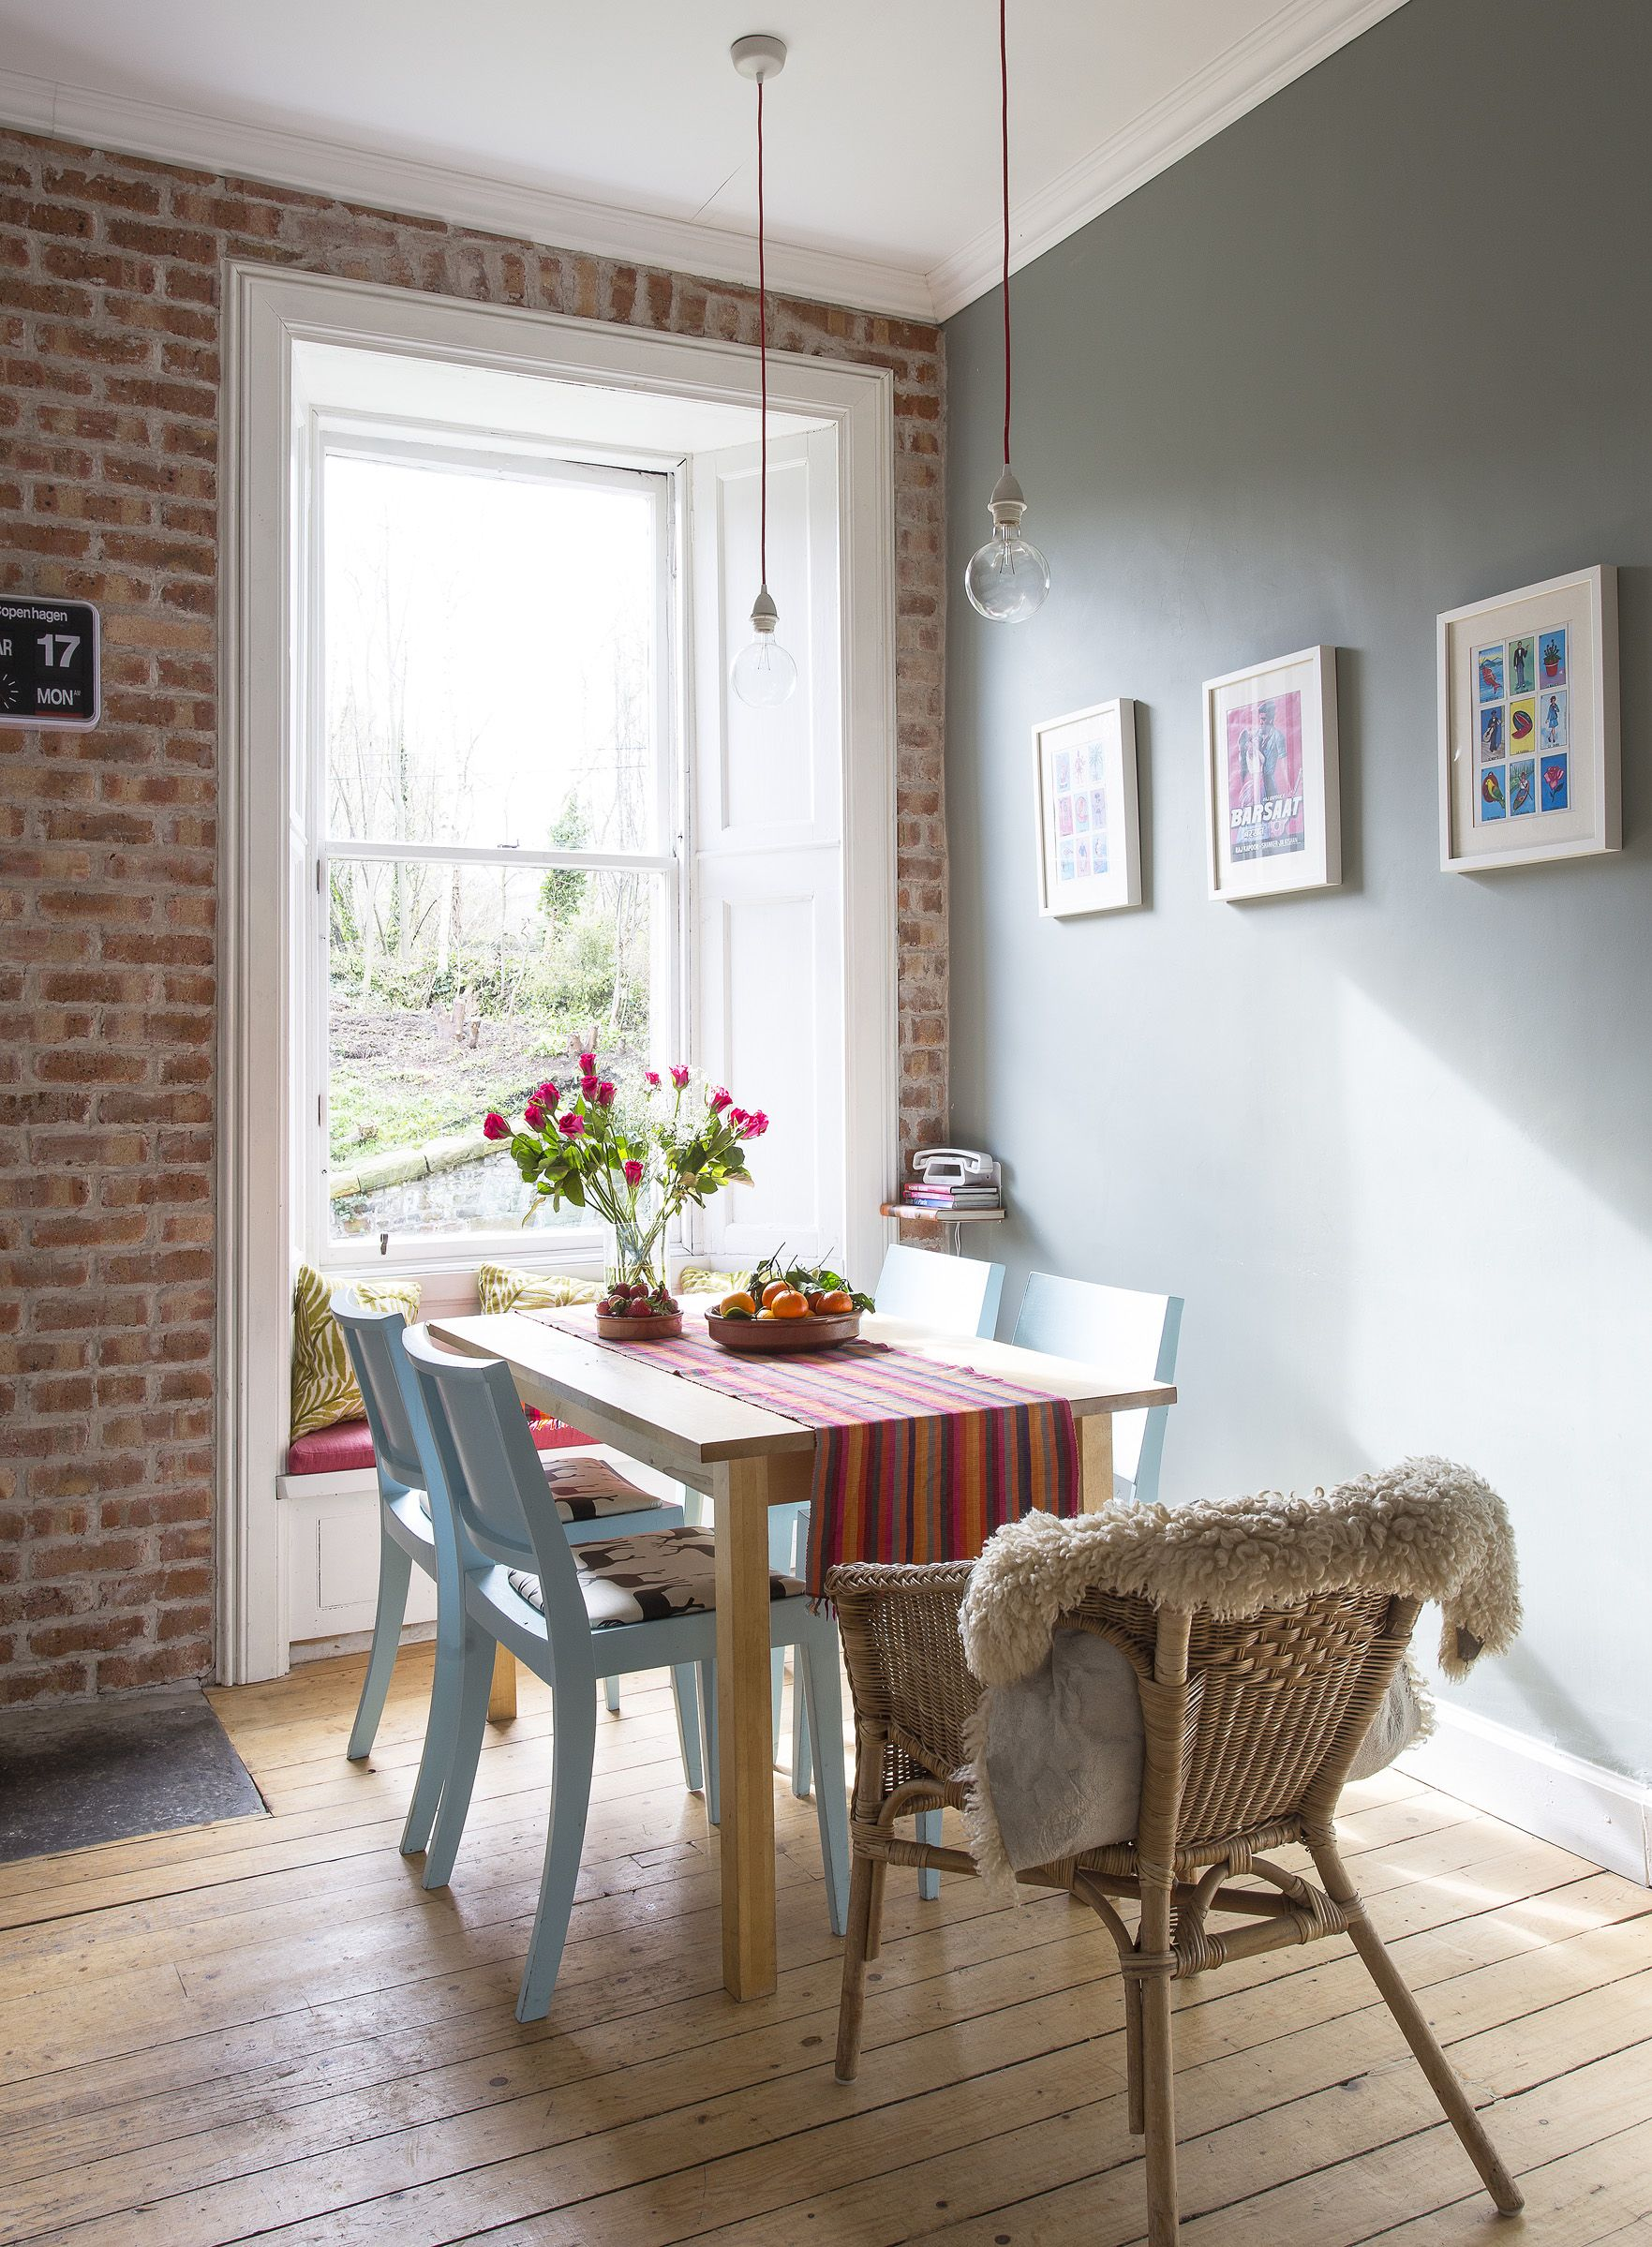 Brick Kitchen Brick Slip Wall By Slimbrick Walls In Pigeon By Farrow And